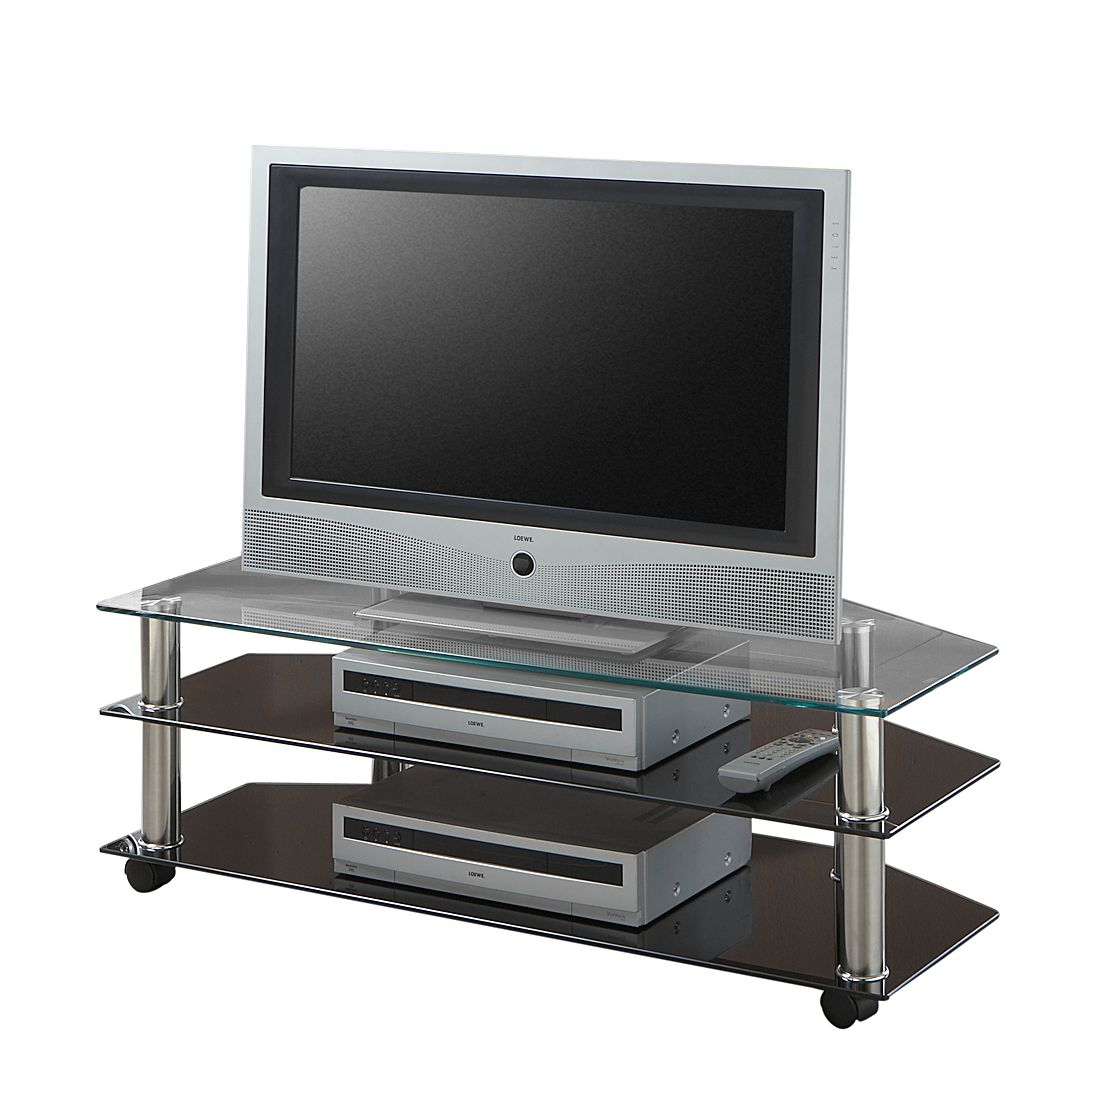 tv wagen latitia metall glas verchromt schwarz klar homedreams g nstig. Black Bedroom Furniture Sets. Home Design Ideas